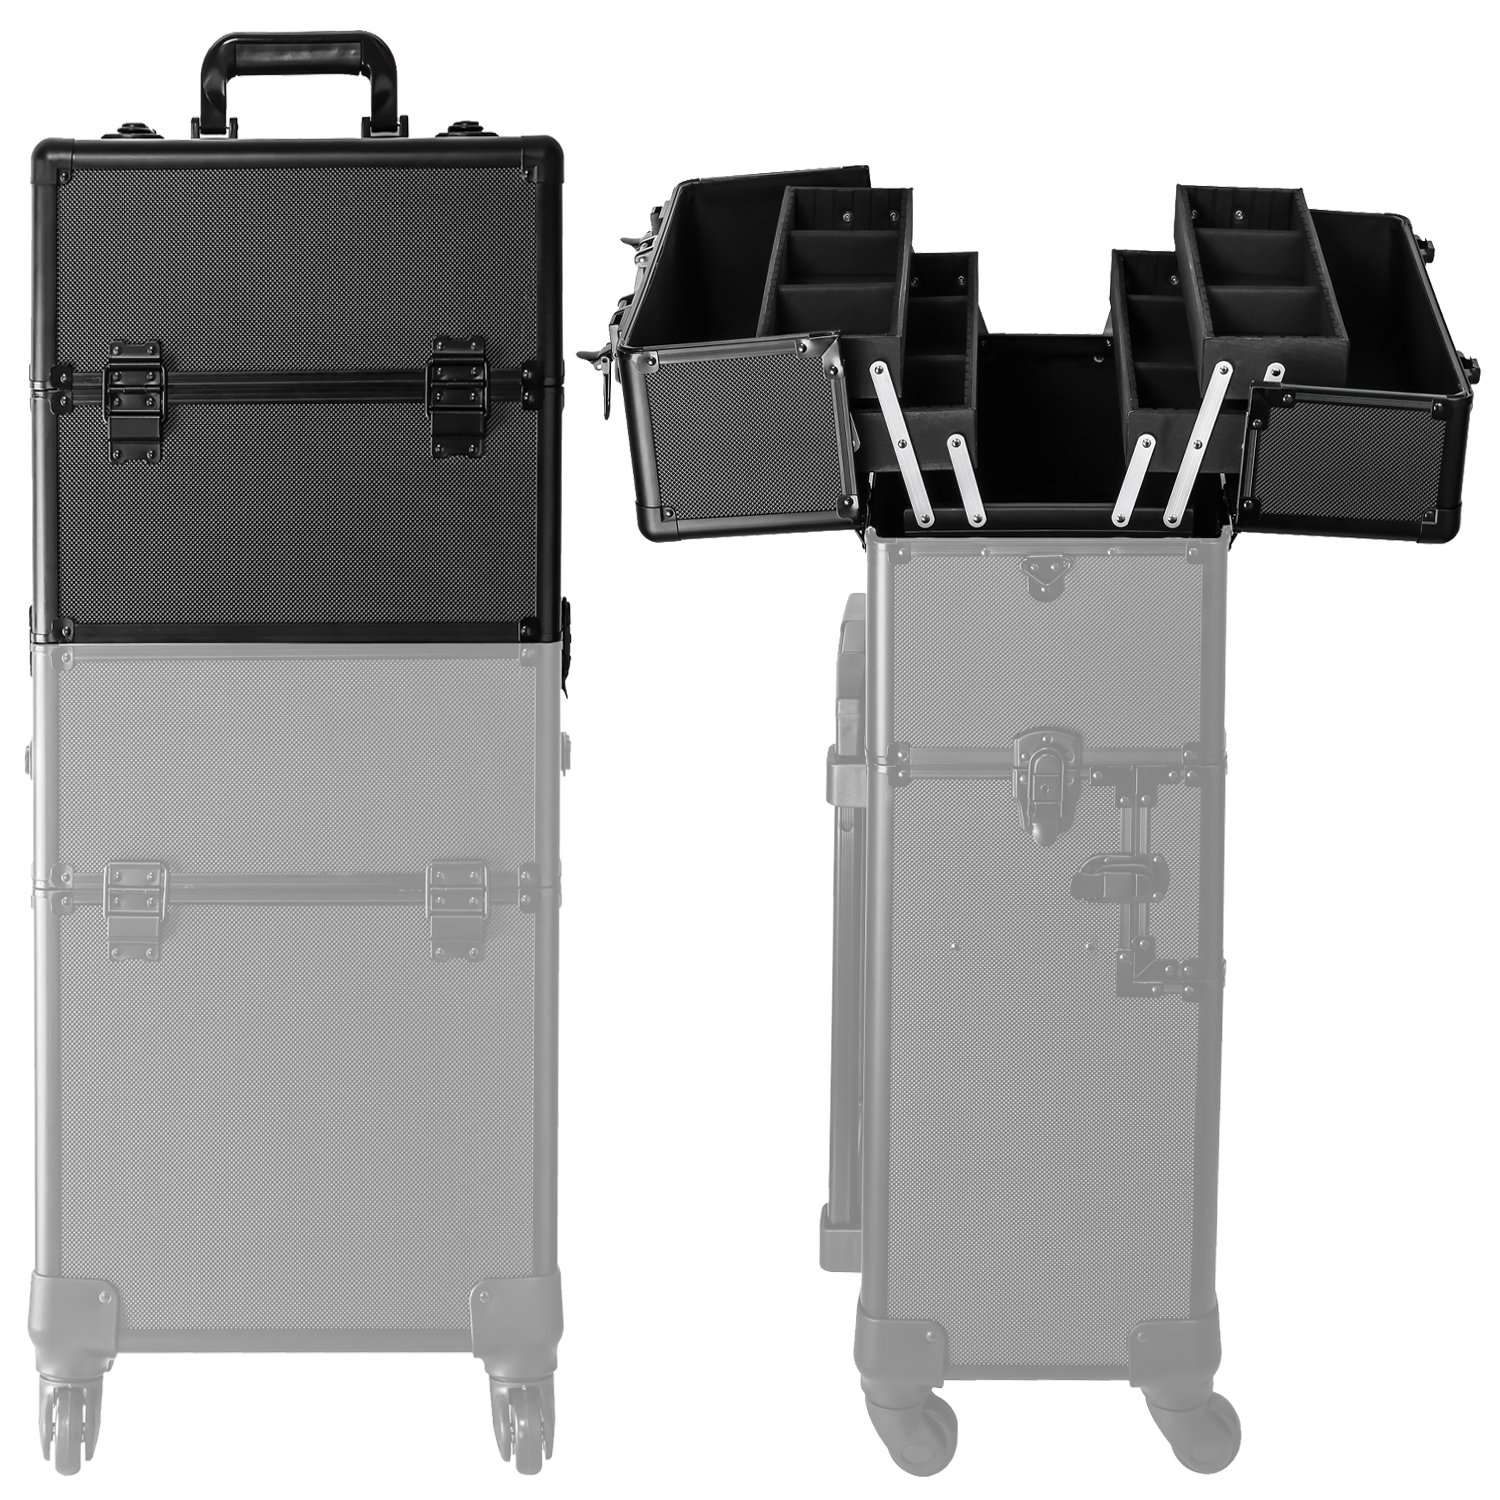 Koval Inc. 4-wheel Rolling 2in1 Makeup Train Cosmetic Case Black by KOVAL INC. (Image #4)